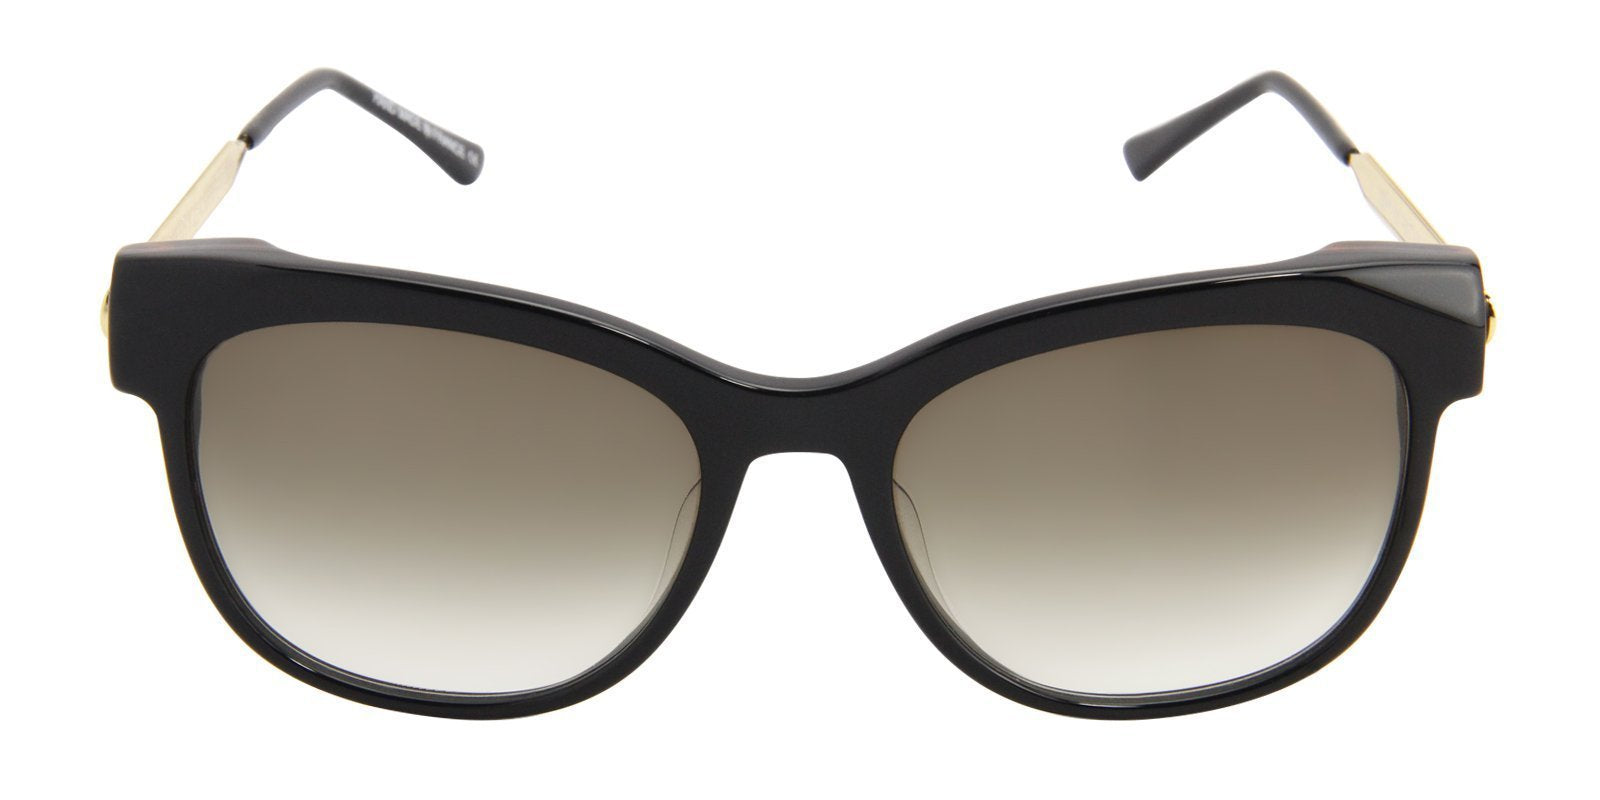 Thierry Lasry - Lippy Black Oval Women Sunglasses - 56mm-Sunglasses-Designer Eyes